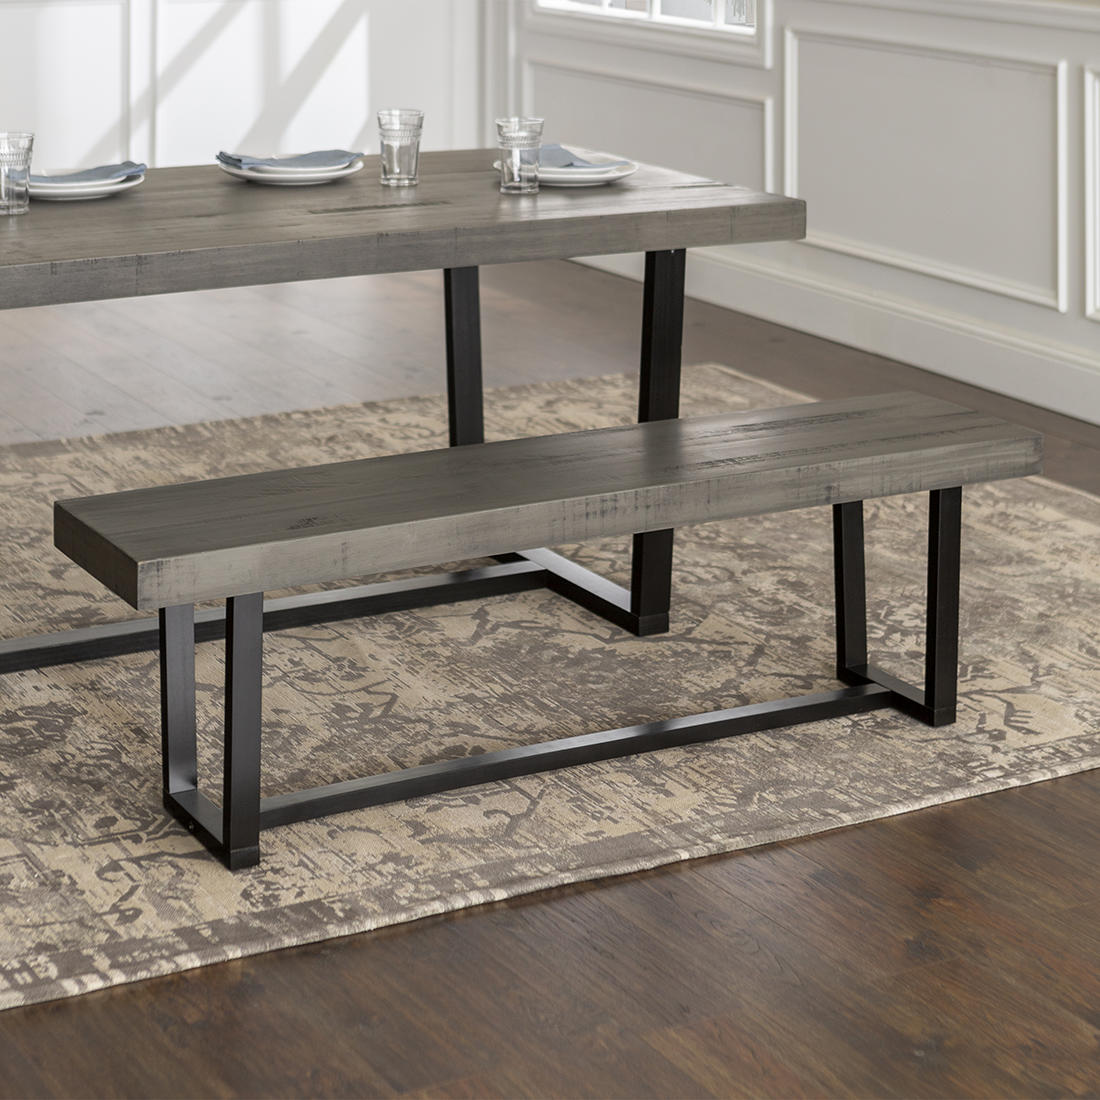 Fabulous W Trends Farmhouse 60 Solid Wood Dining Bench Gray Bjs Alphanode Cool Chair Designs And Ideas Alphanodeonline